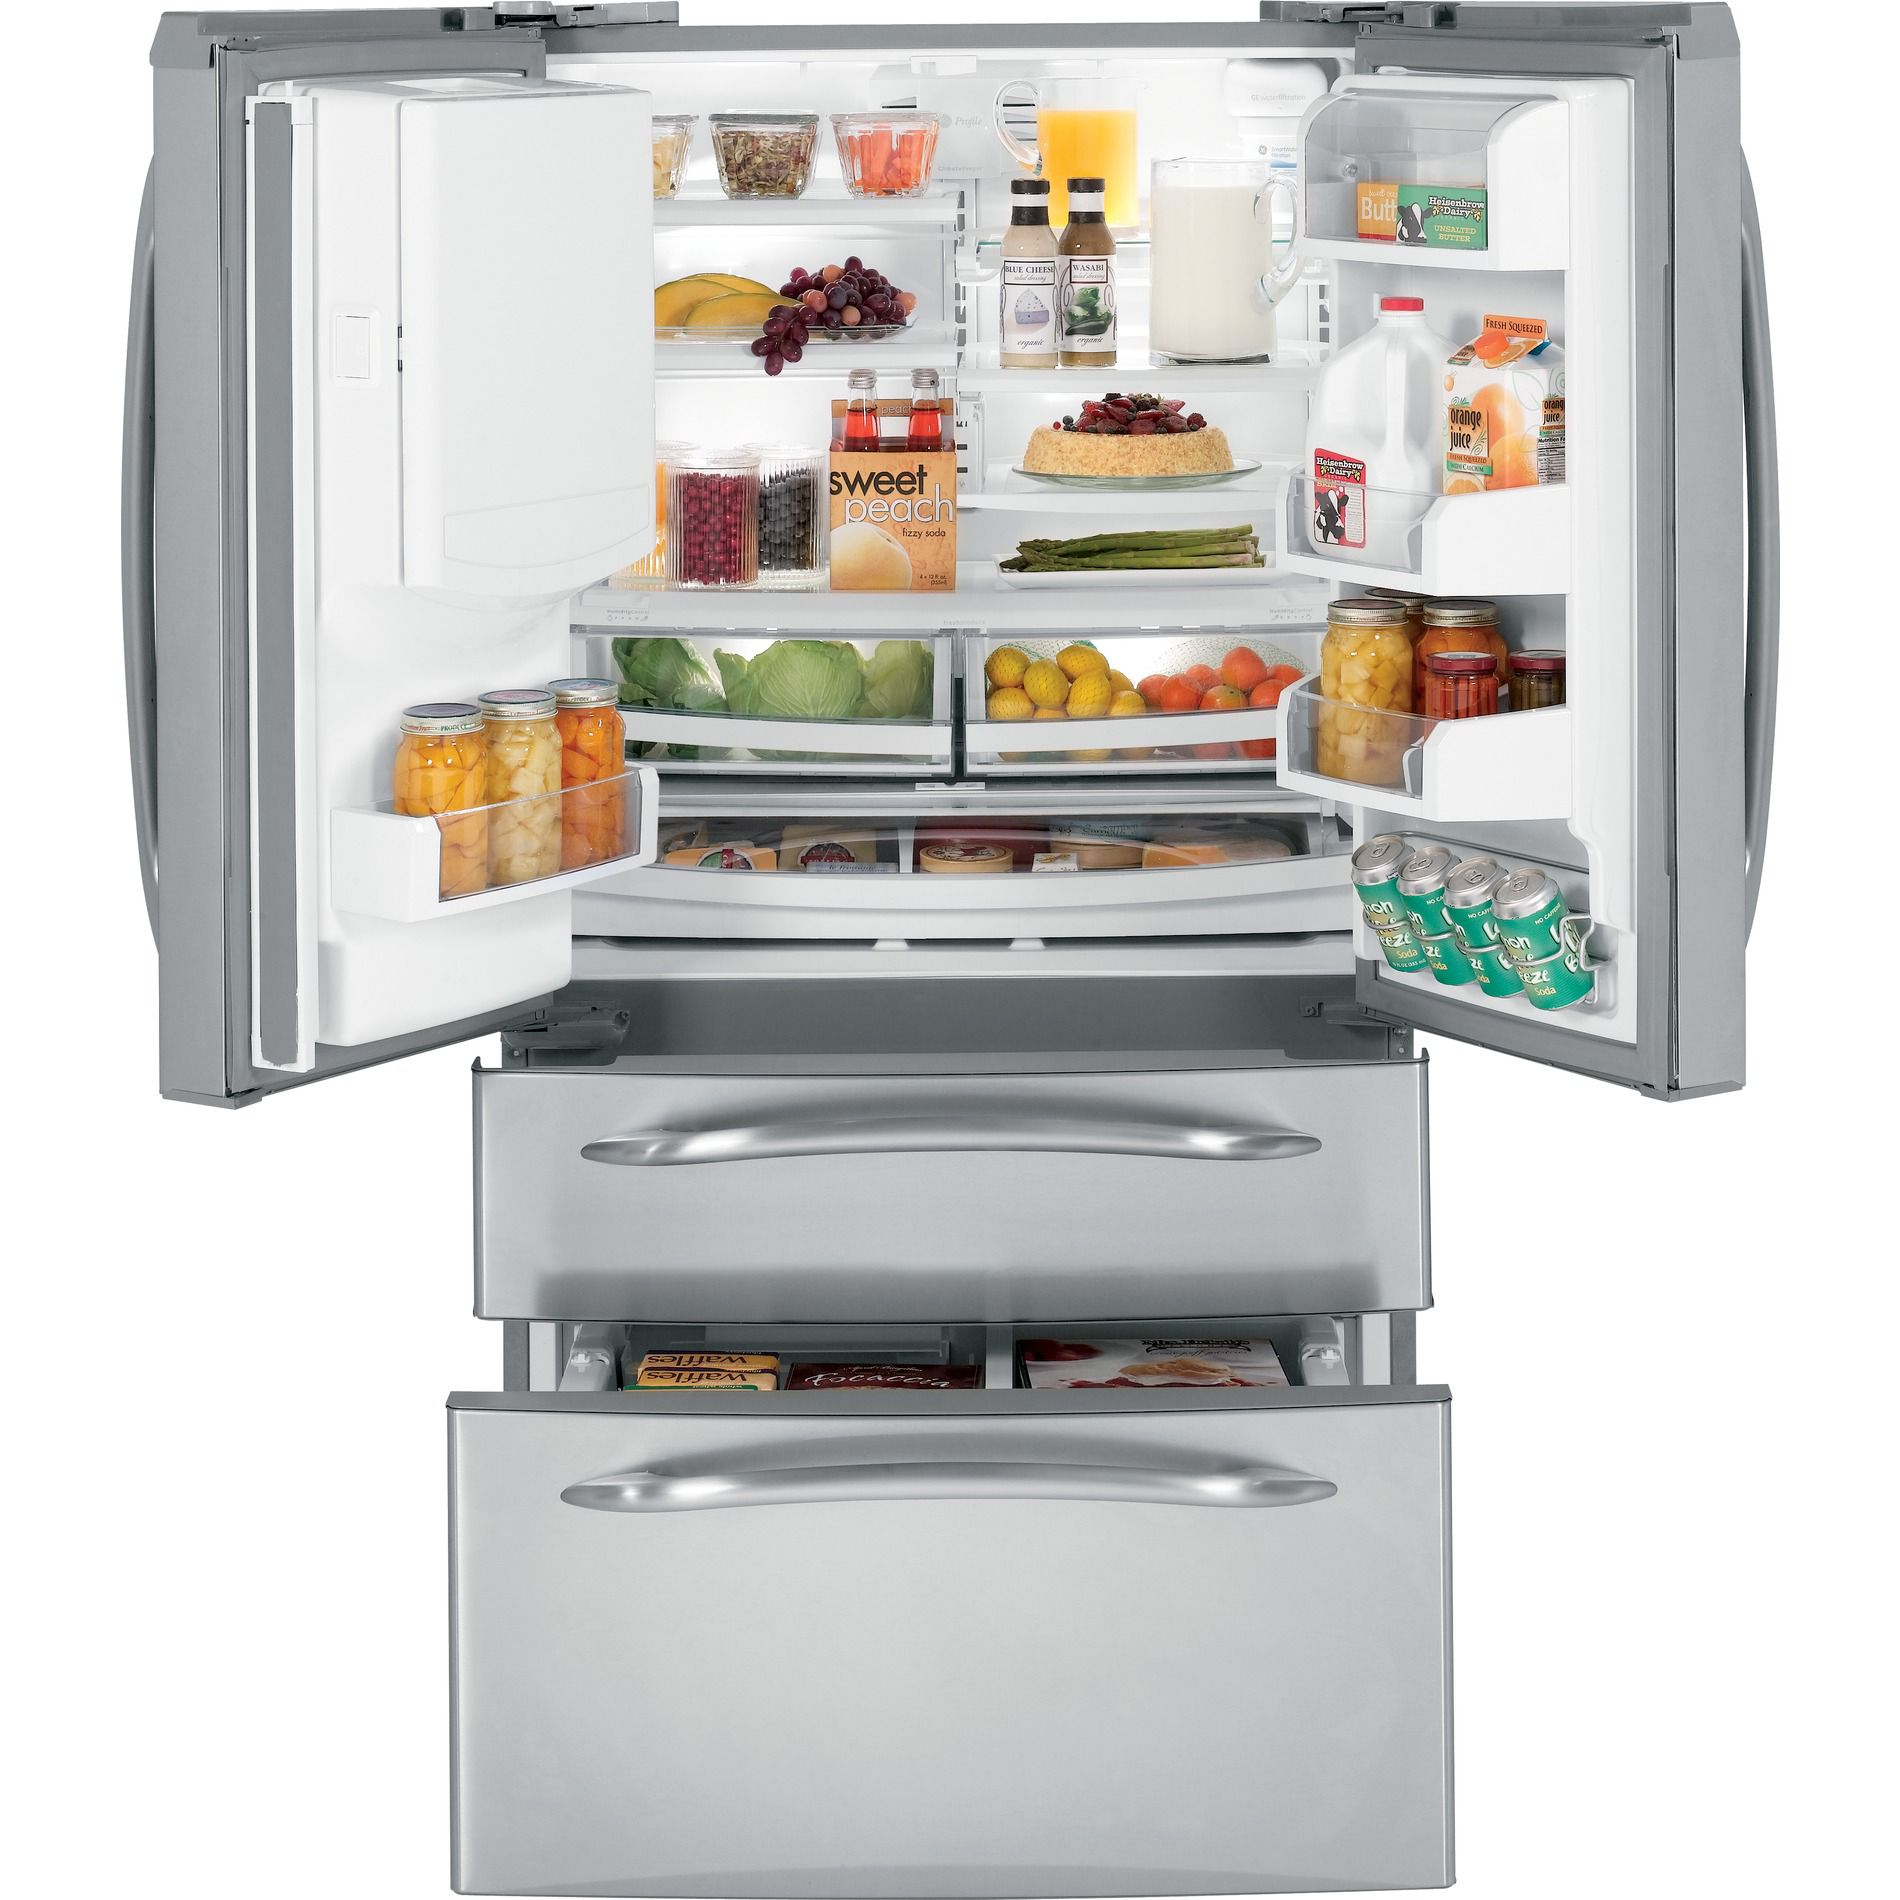 GE Profile™ Series 20.7 cu. ft. French Door Bottom-Freezer Refrigerator - Stainless Steel